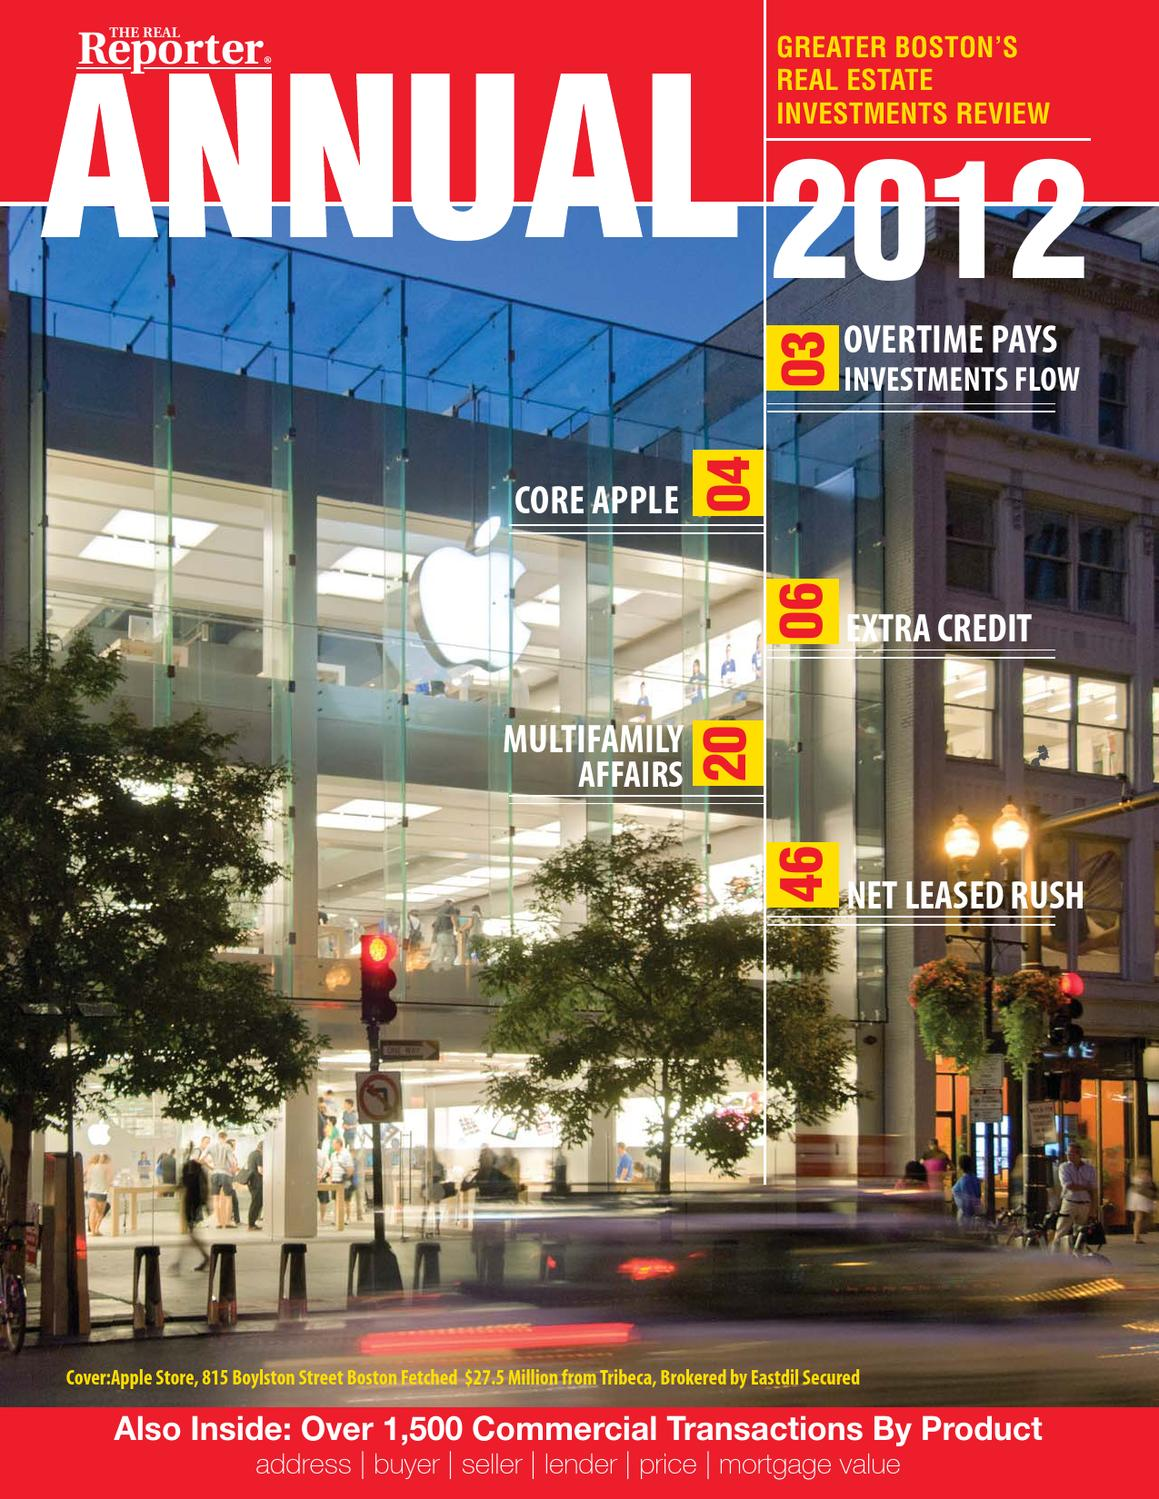 annual real estate investment report greater boston by the real annual real estate investment report greater boston by the real reporter issuu